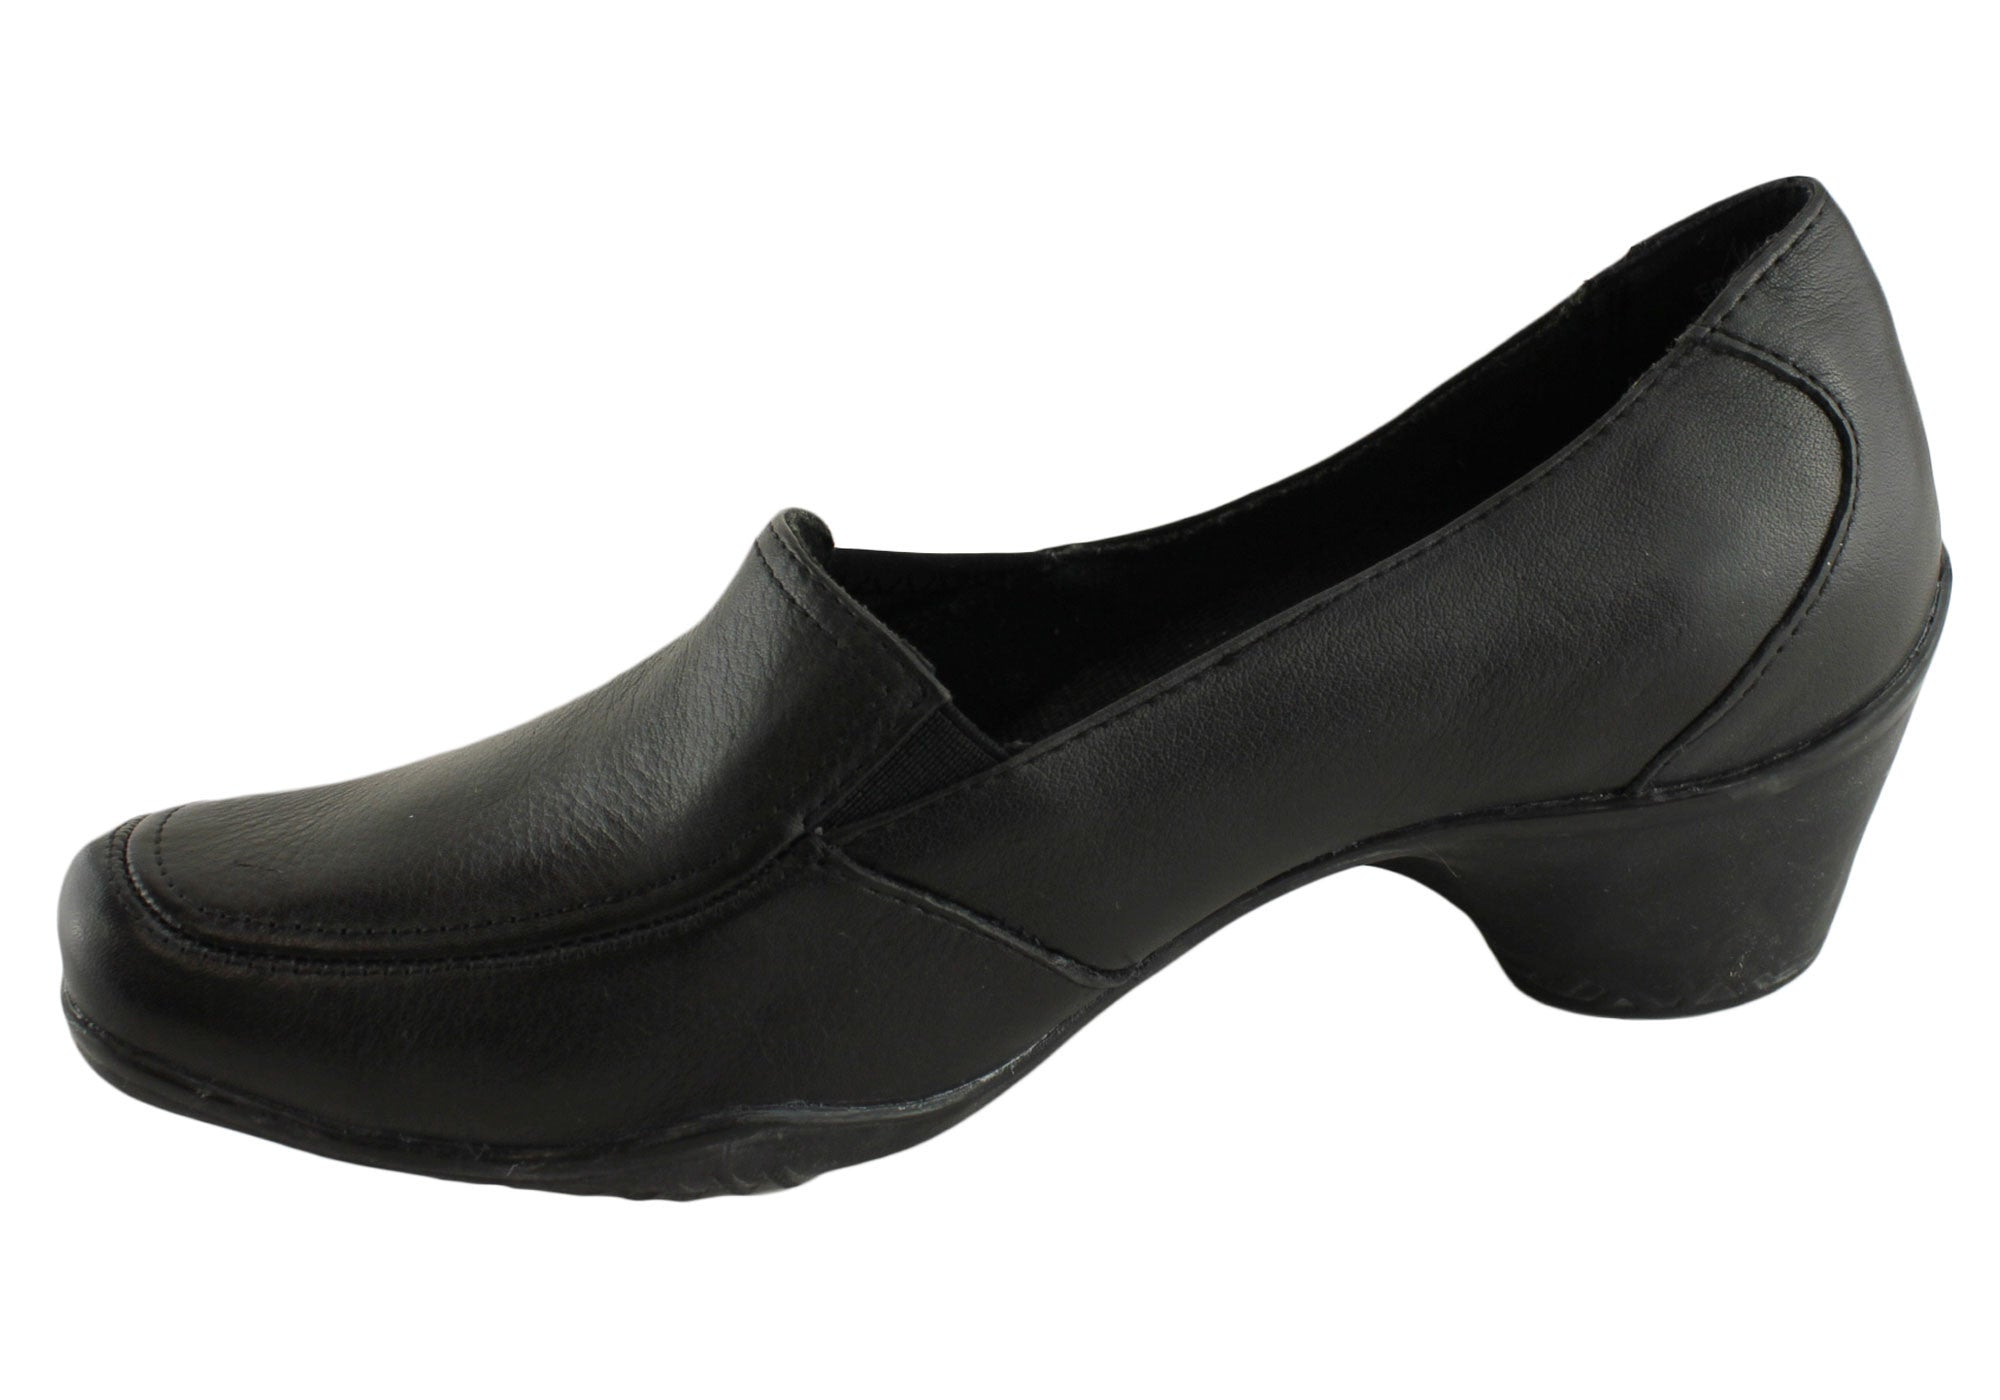 Hush Puppies Equalize Womens Comfort Heels